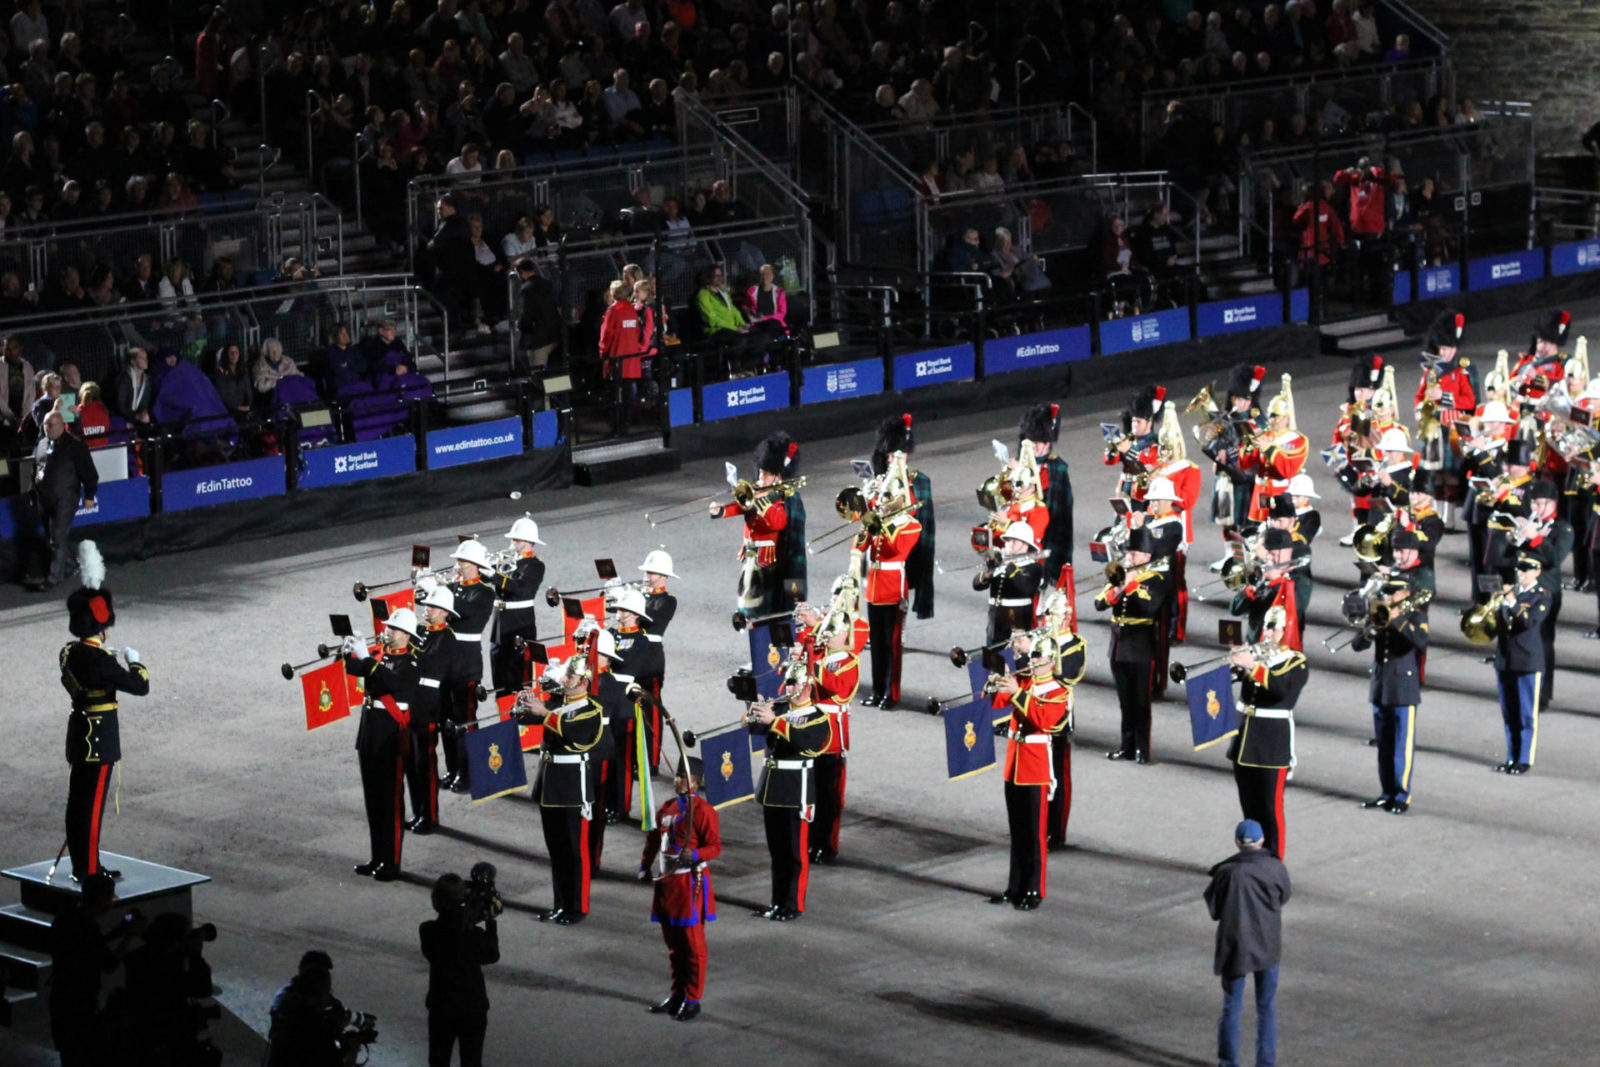 Edinburgh Royal Military Tattoo 2016 travel blogger